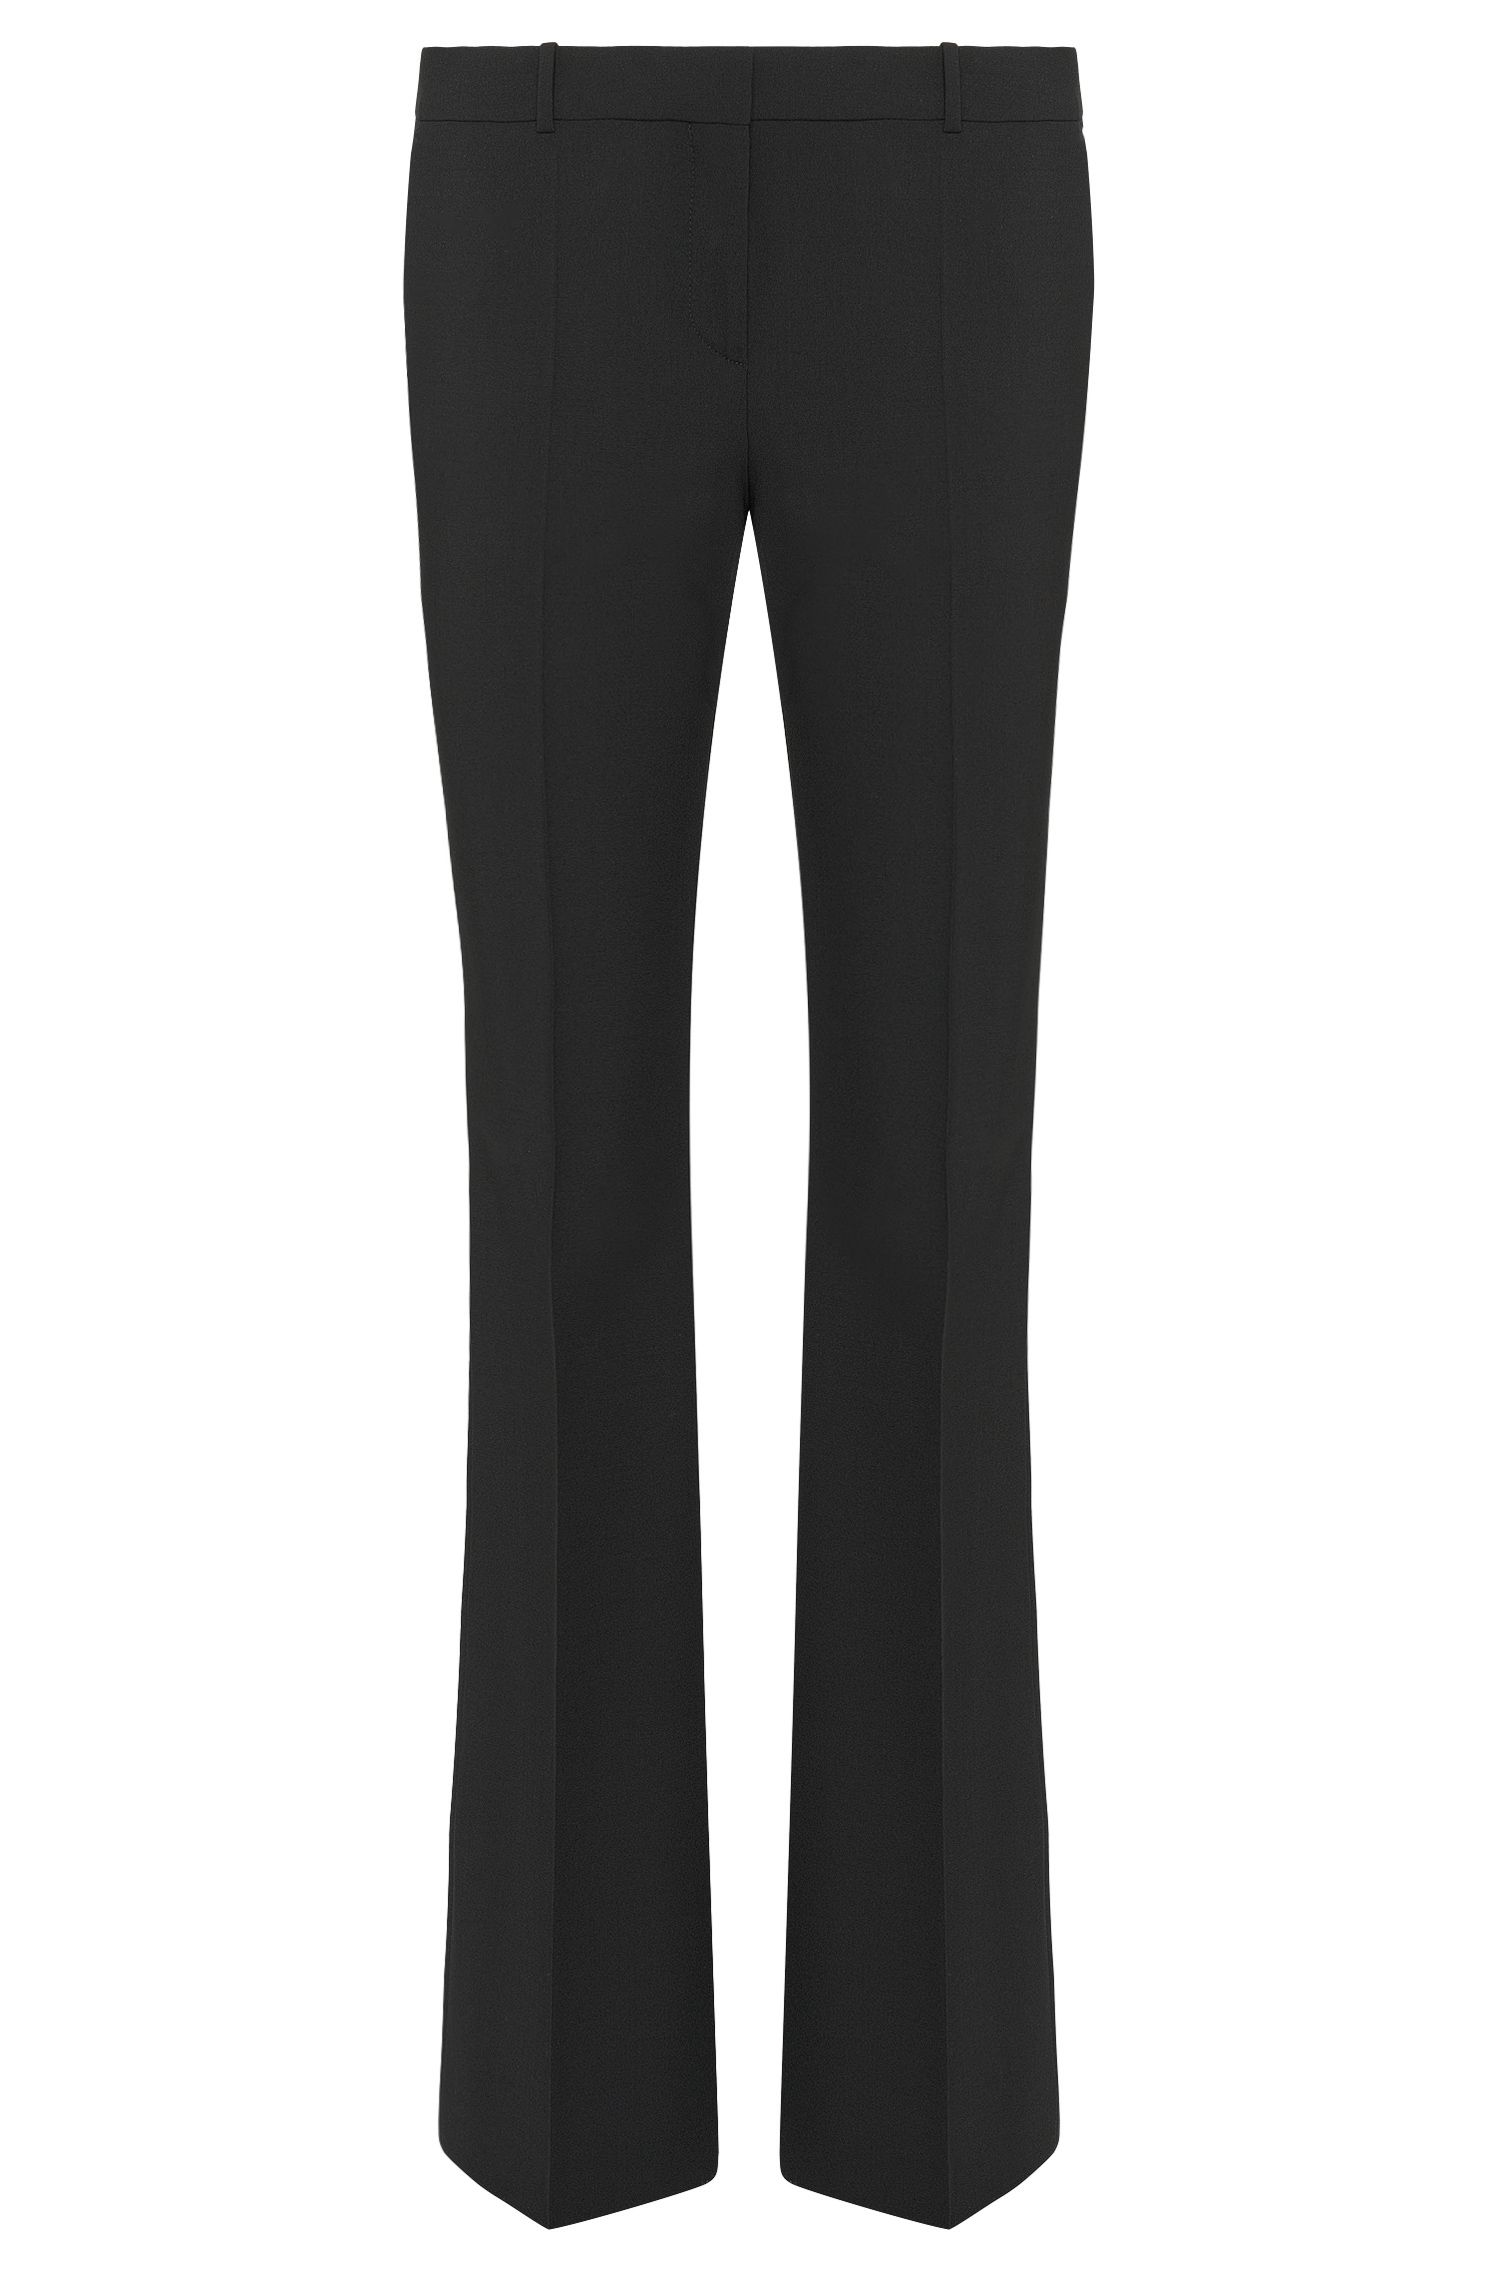 Boot-cut trousers with hardware detail by BOSS Womenswear Fundamentals